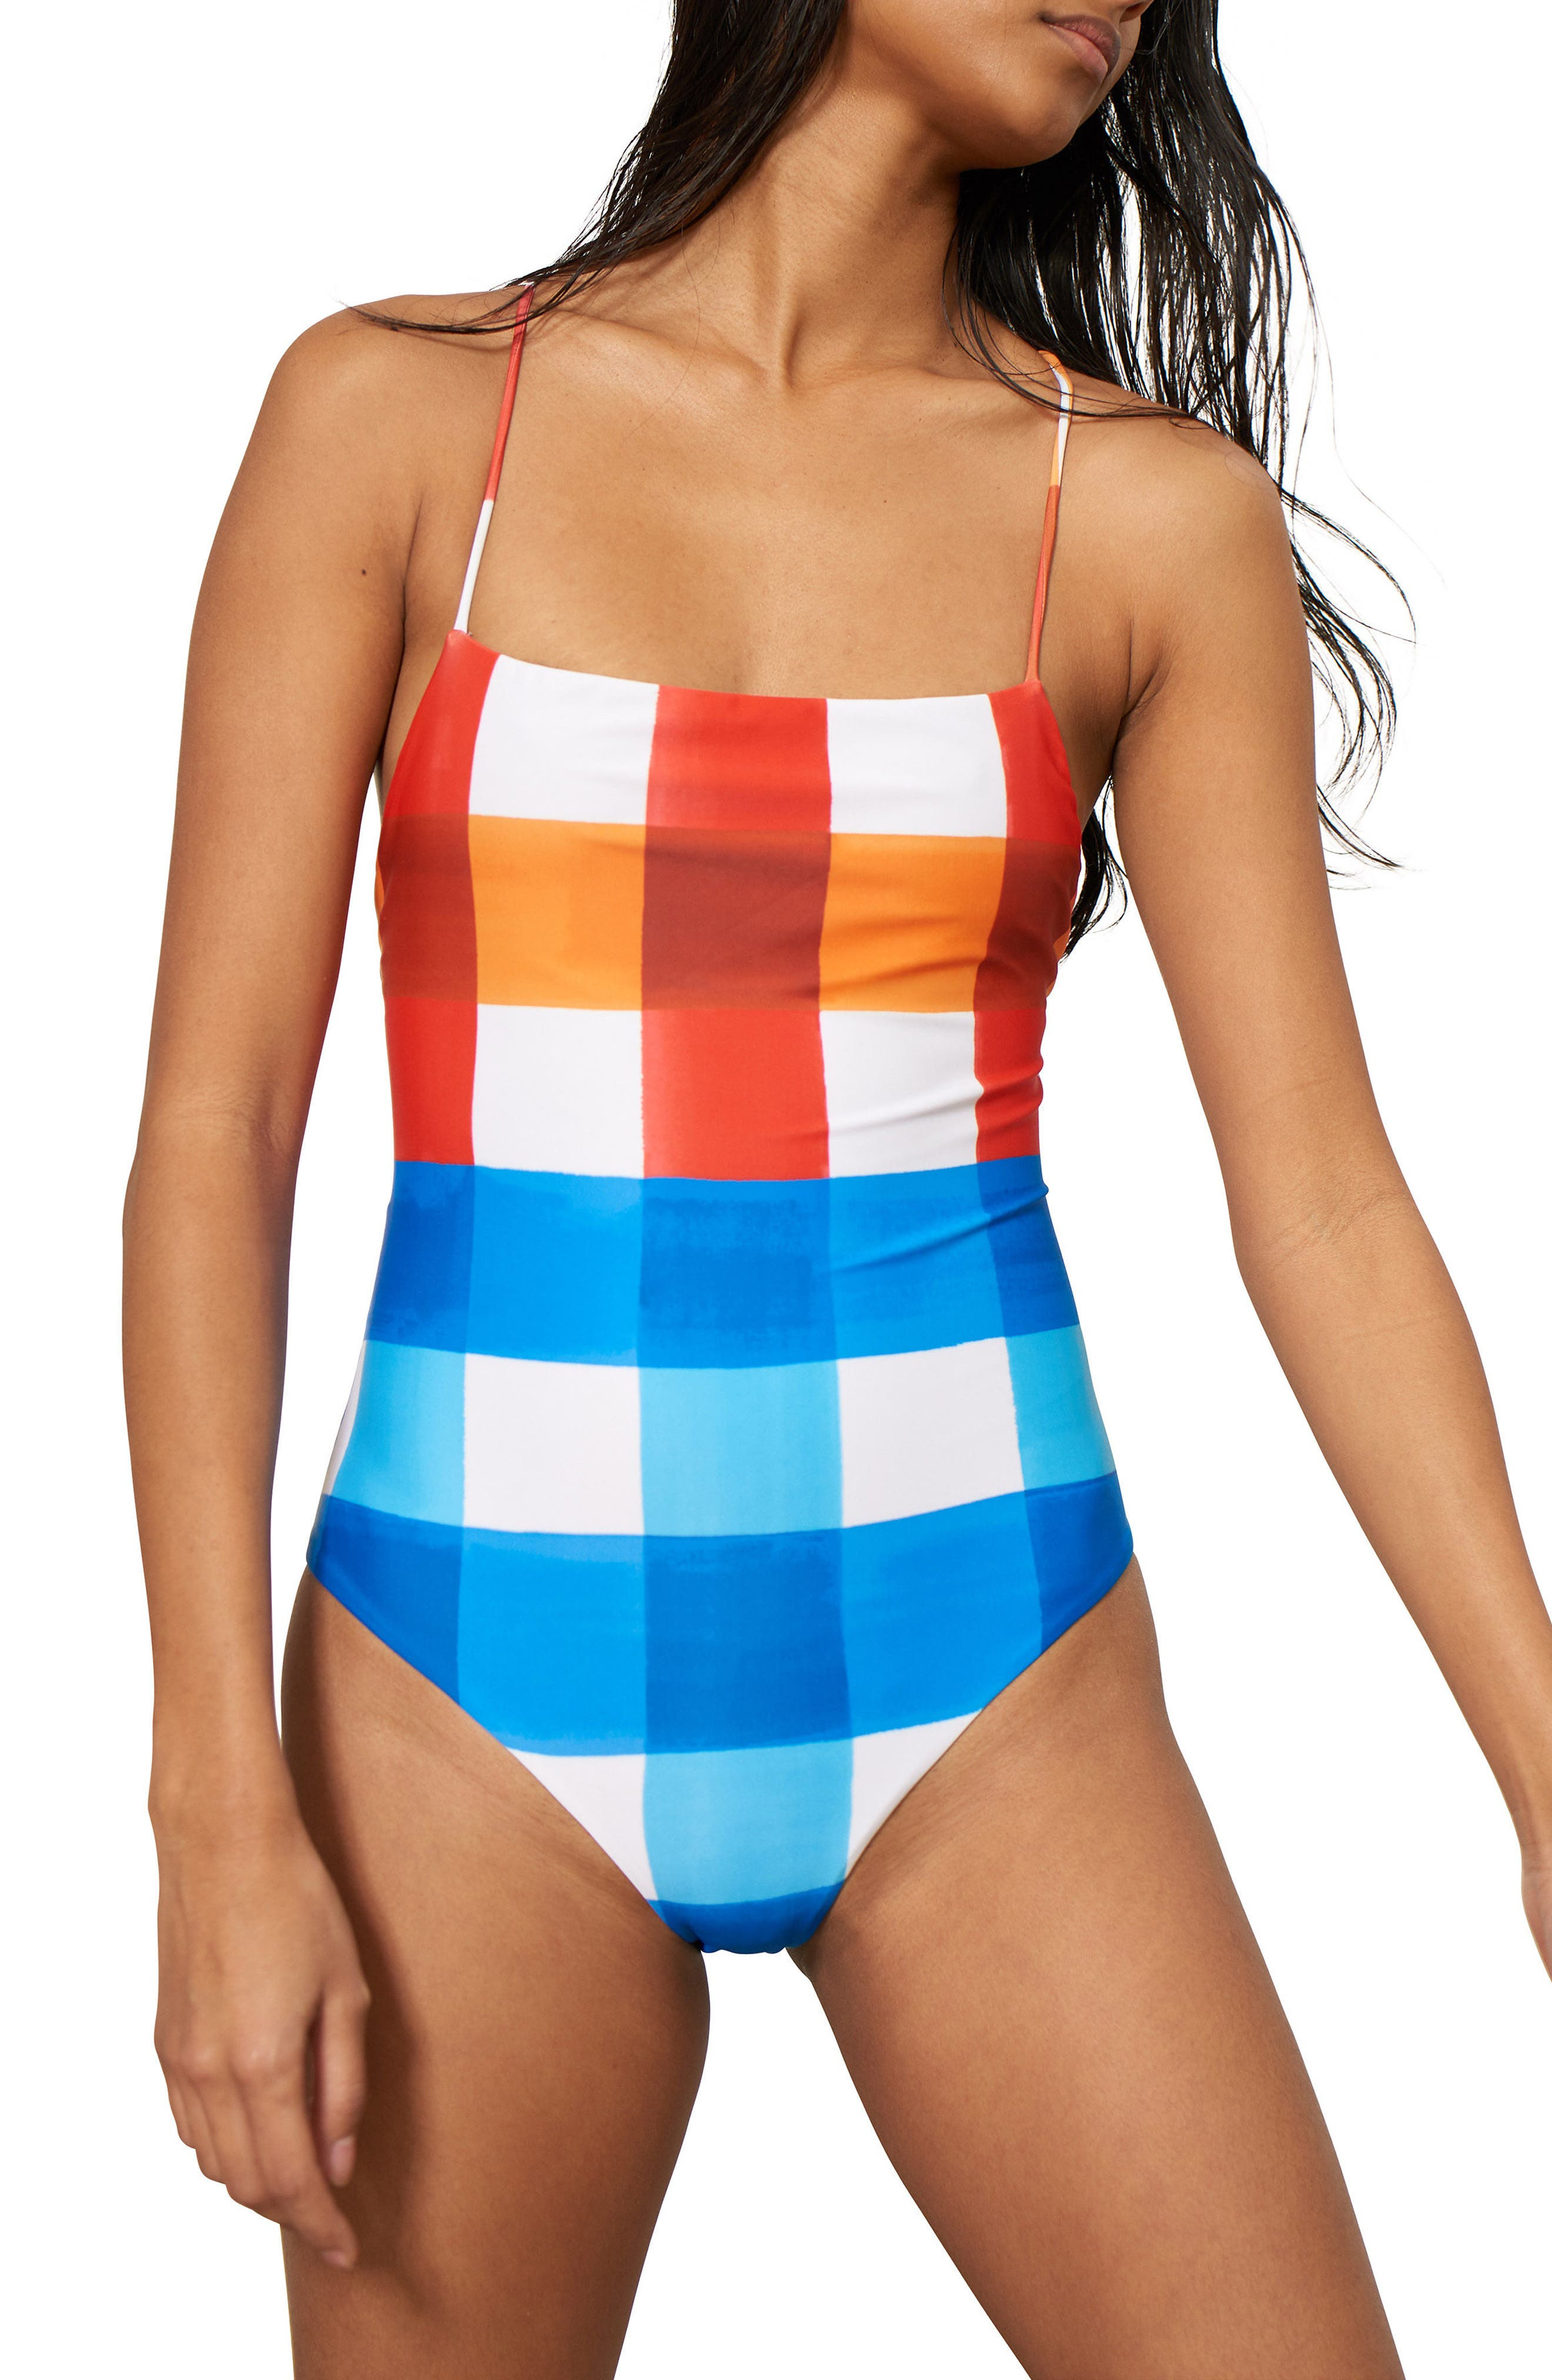 Olympia One-Piece Swimsuit,                             Main thumbnail 1, color,                             605